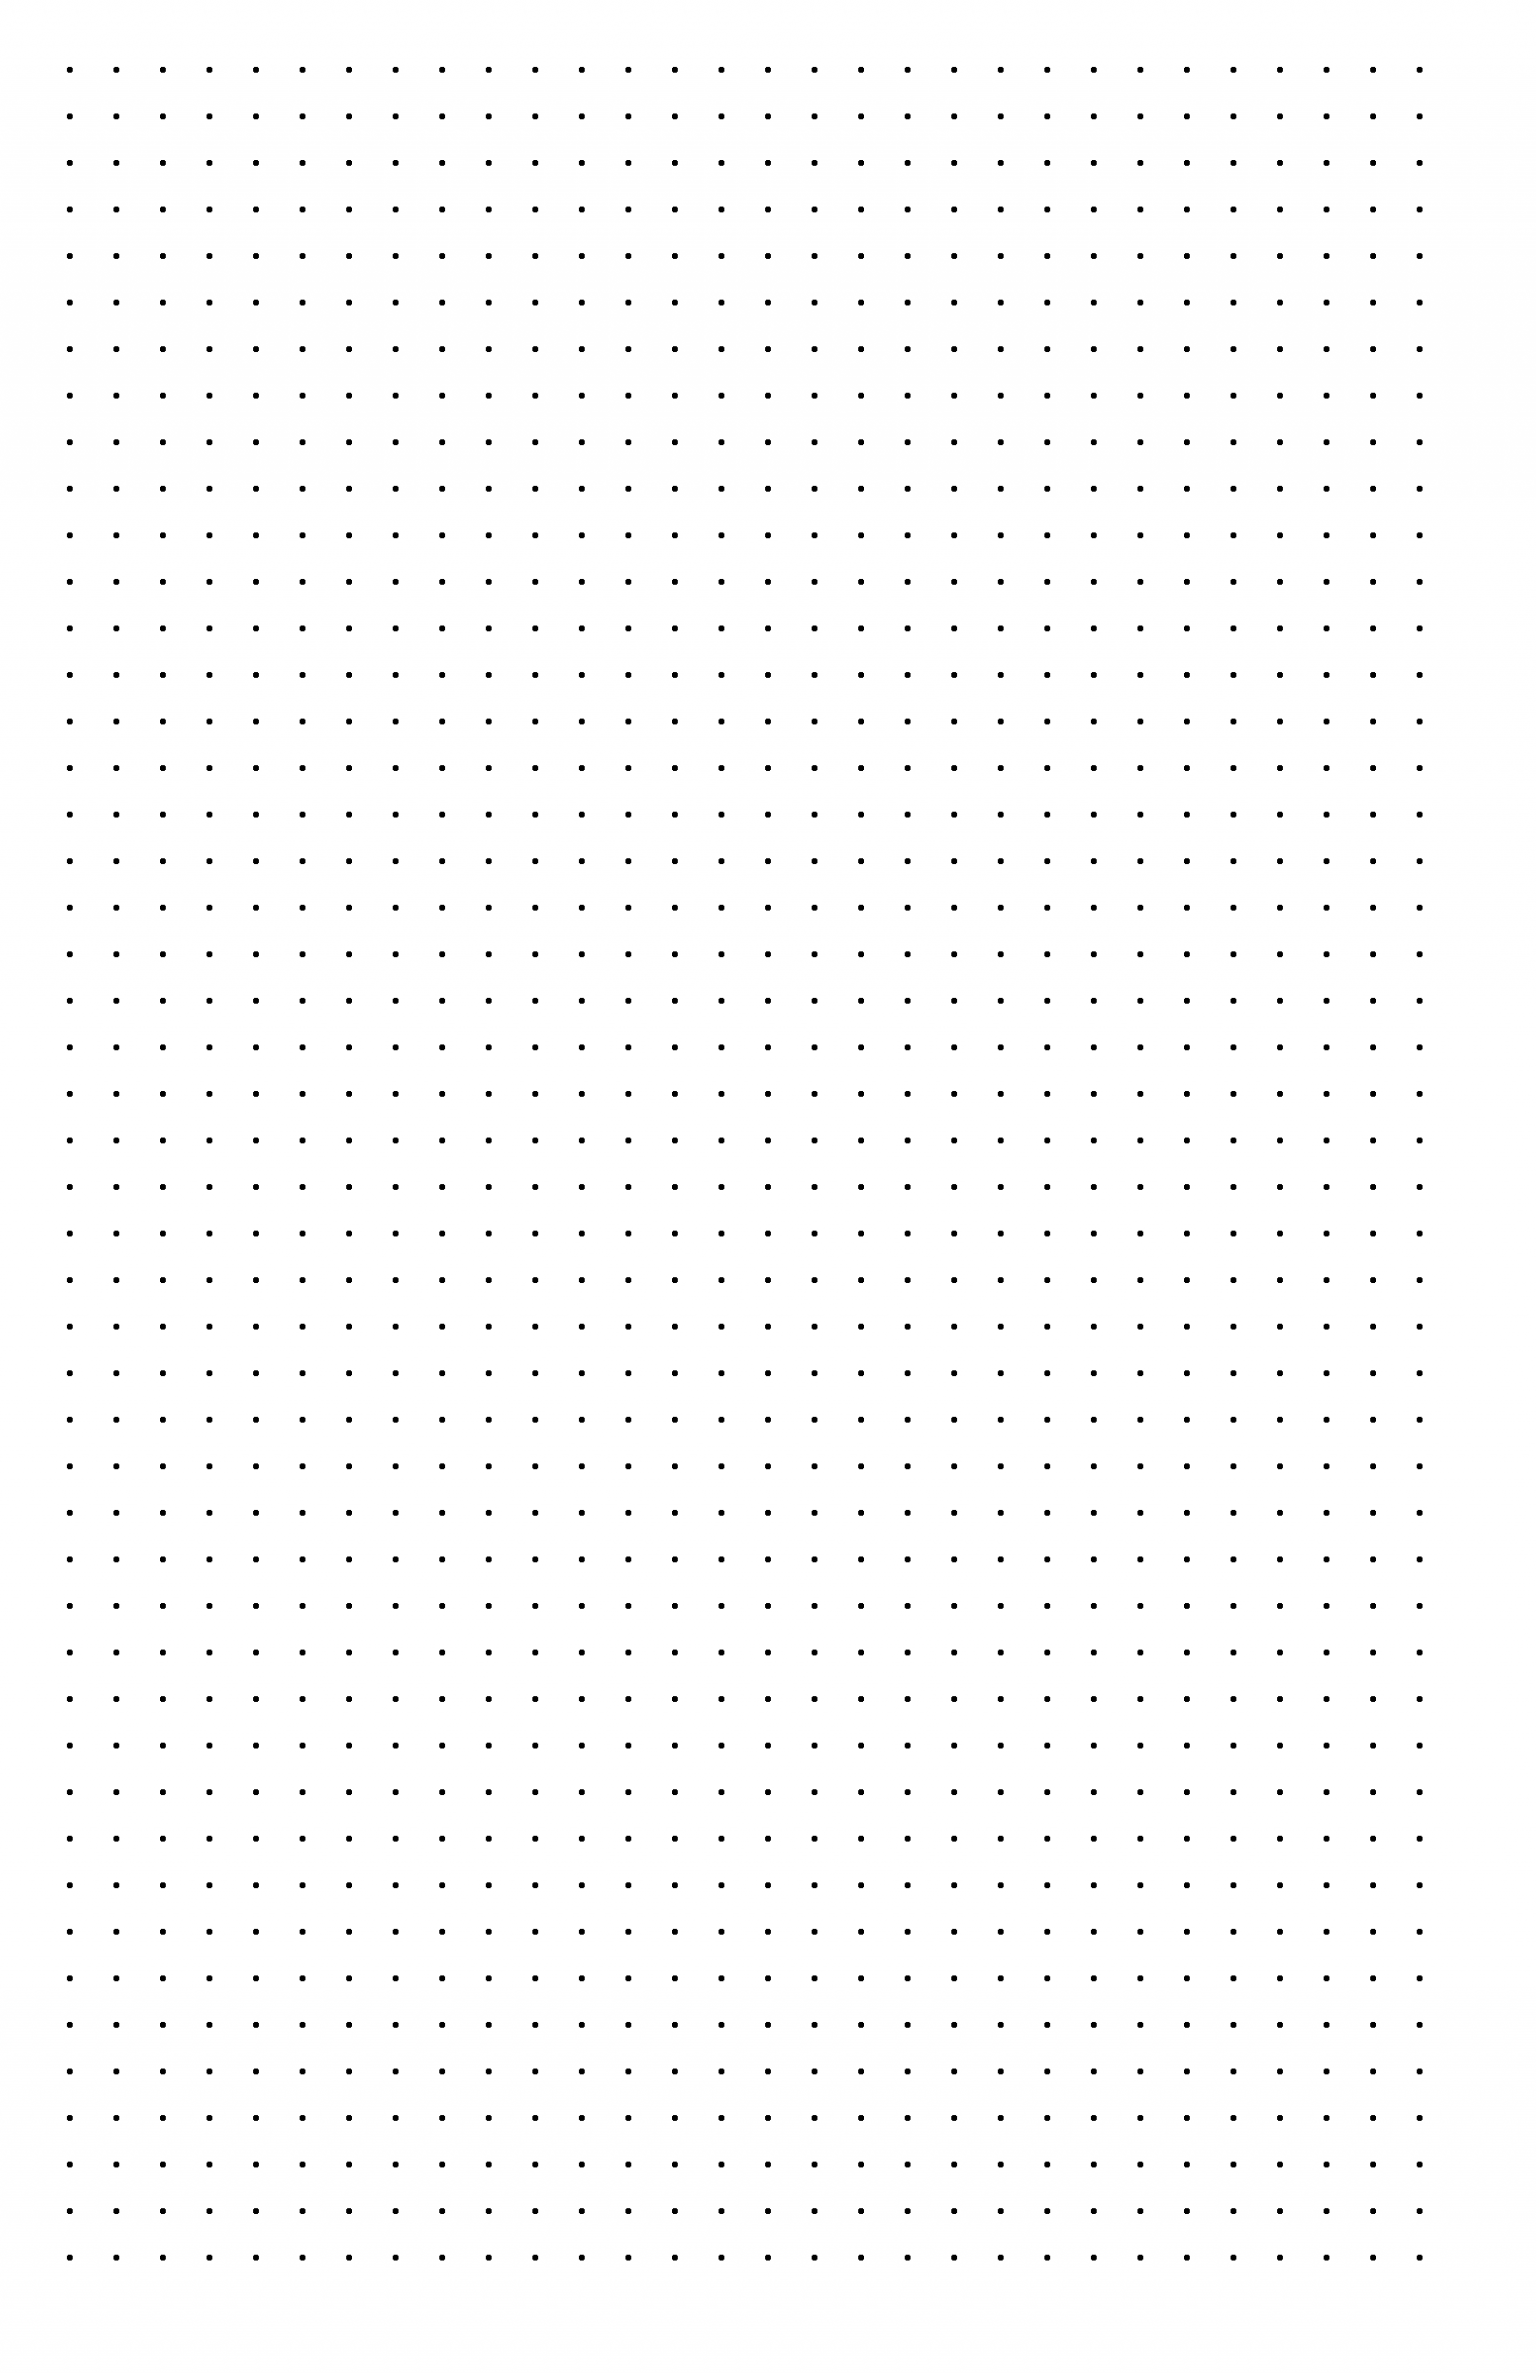 letter f template printable  Dot Paper with Three Dots per Inch on Ledger-Sized Paper ..